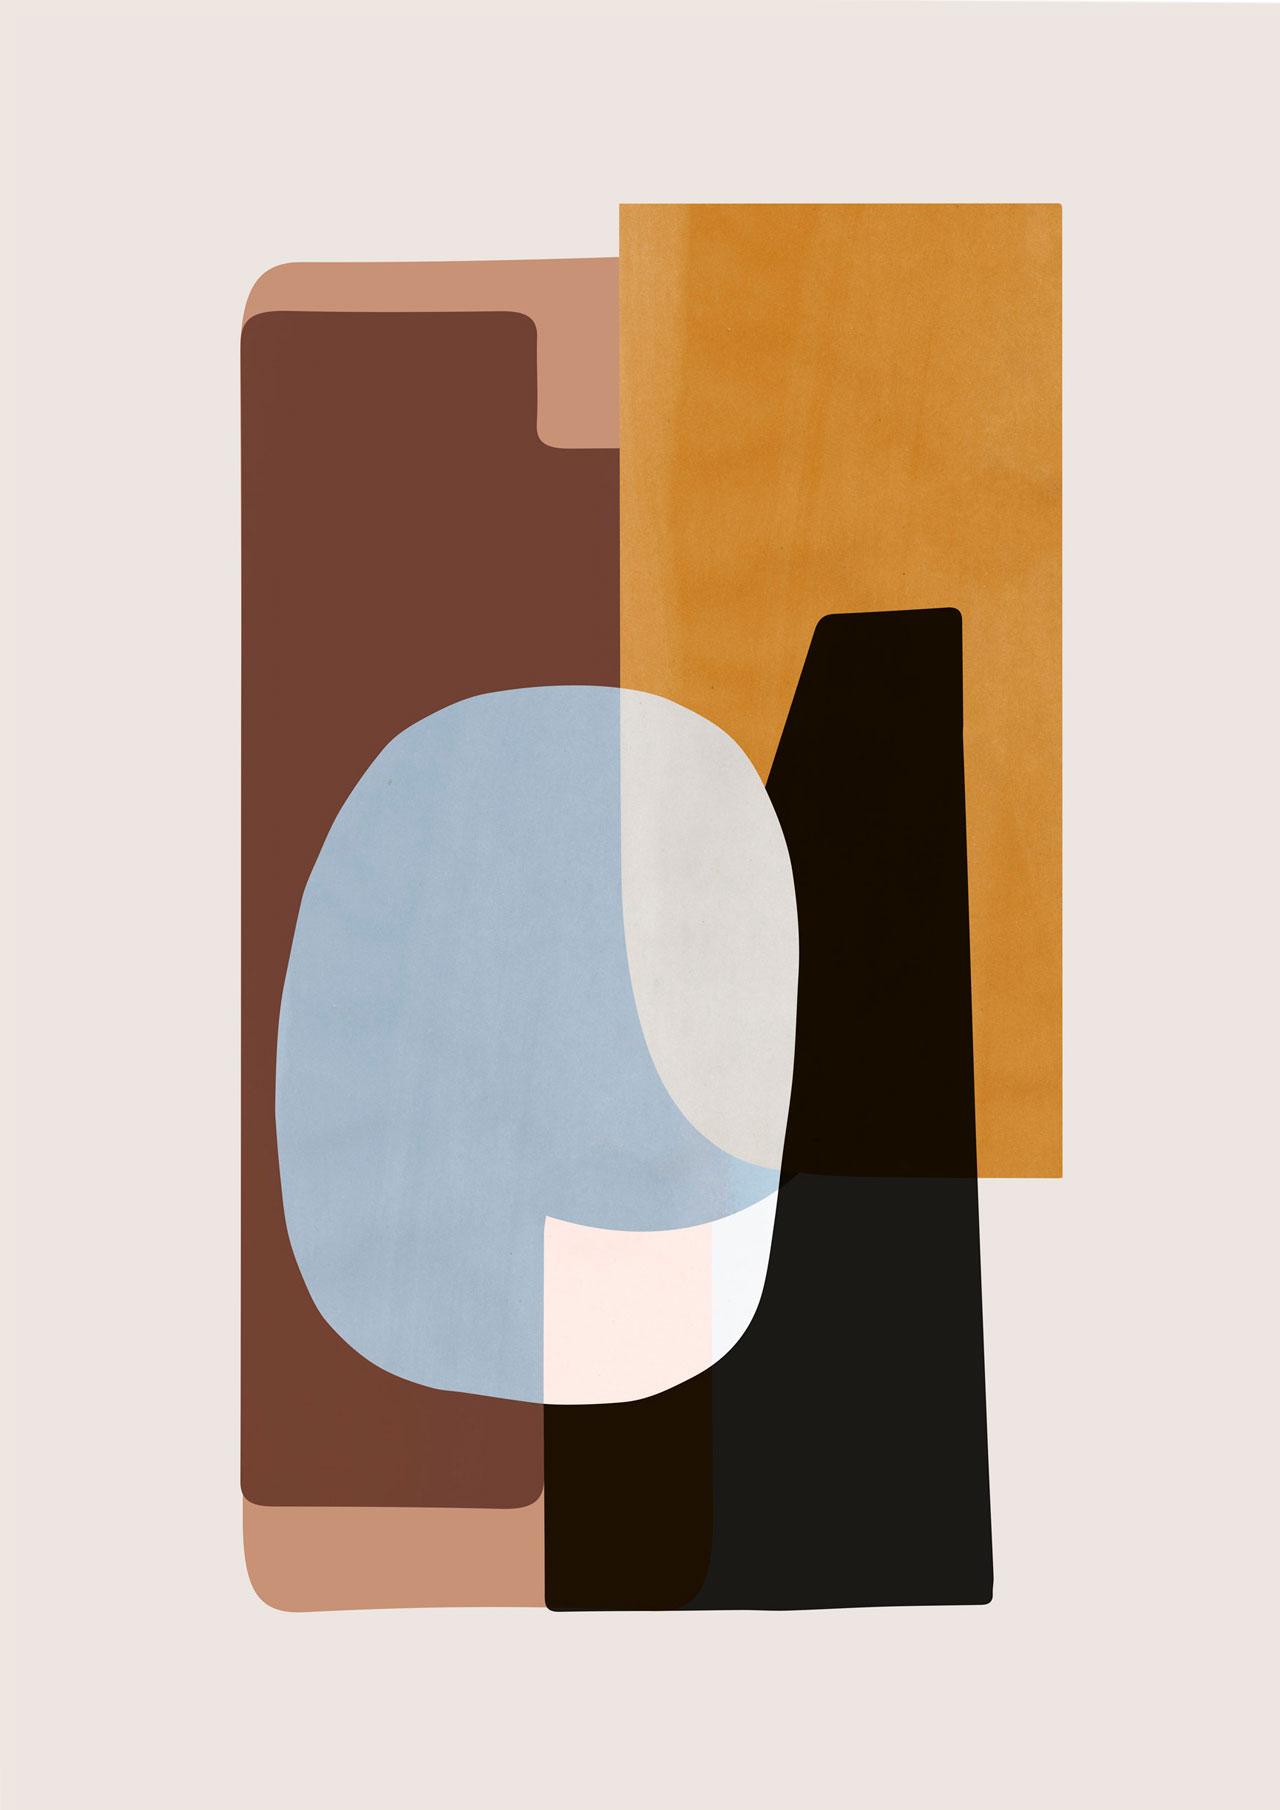 ABSTRACTION poster 50X70 cm by Ferm Living.